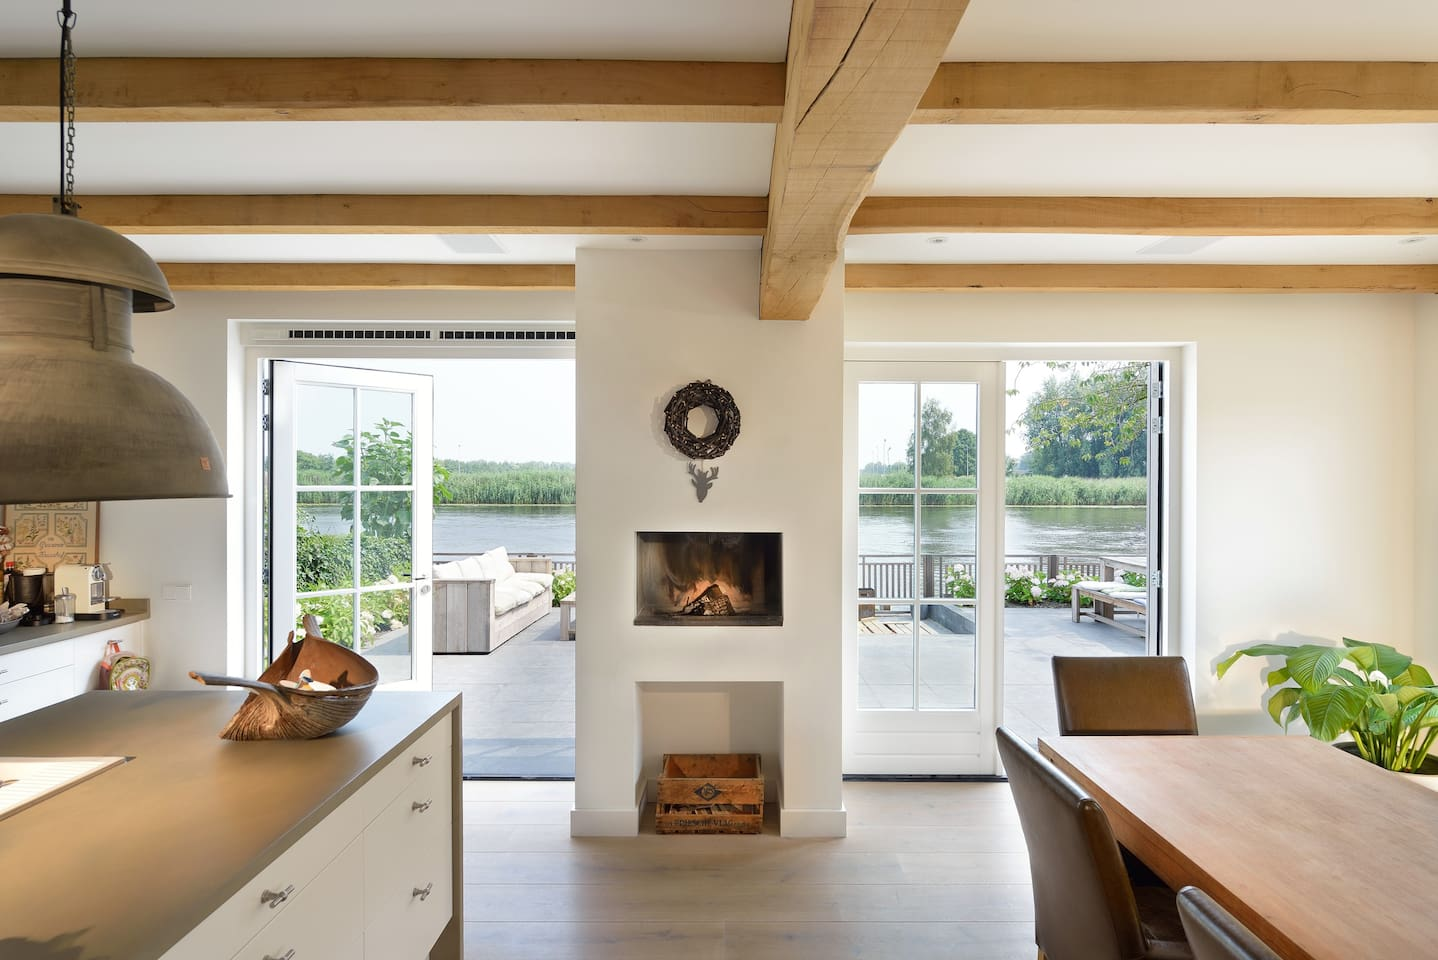 Lovely house, 20 min from Amsterdam. beautiful country side area, not to remote. Light living, windows all around